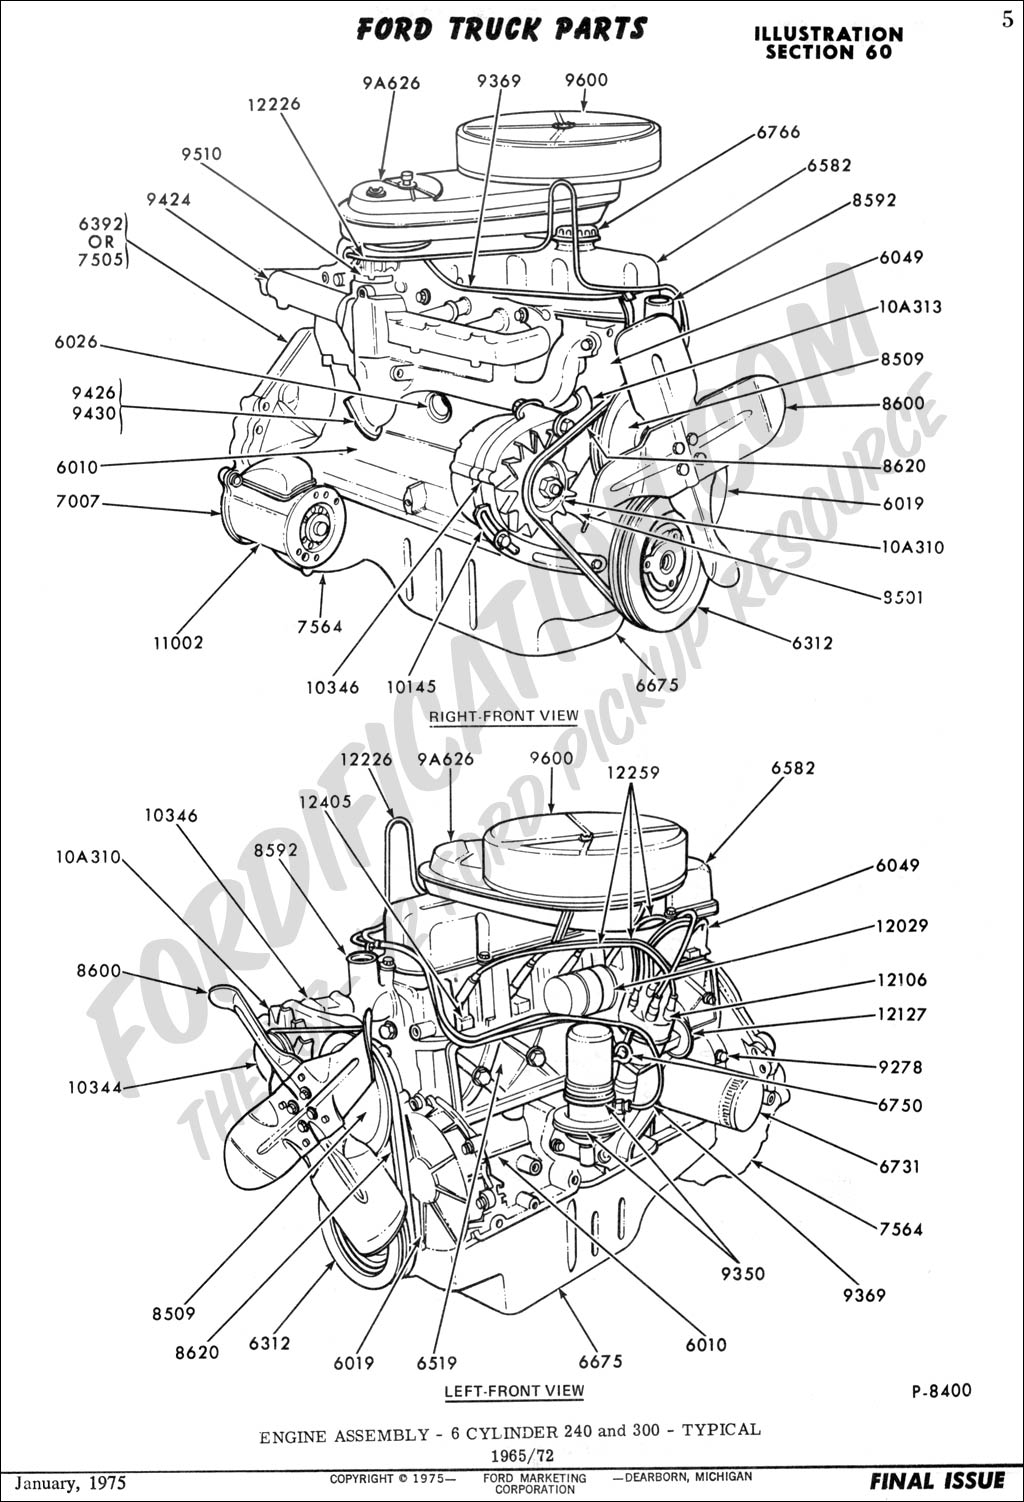 [DIAGRAM_3NM]  99813 1996 Ford Bronco Radio Wiring Diagram | Wiring Resources | 1996 Ford Alternator Wiring Diagram |  | Wiring Resources